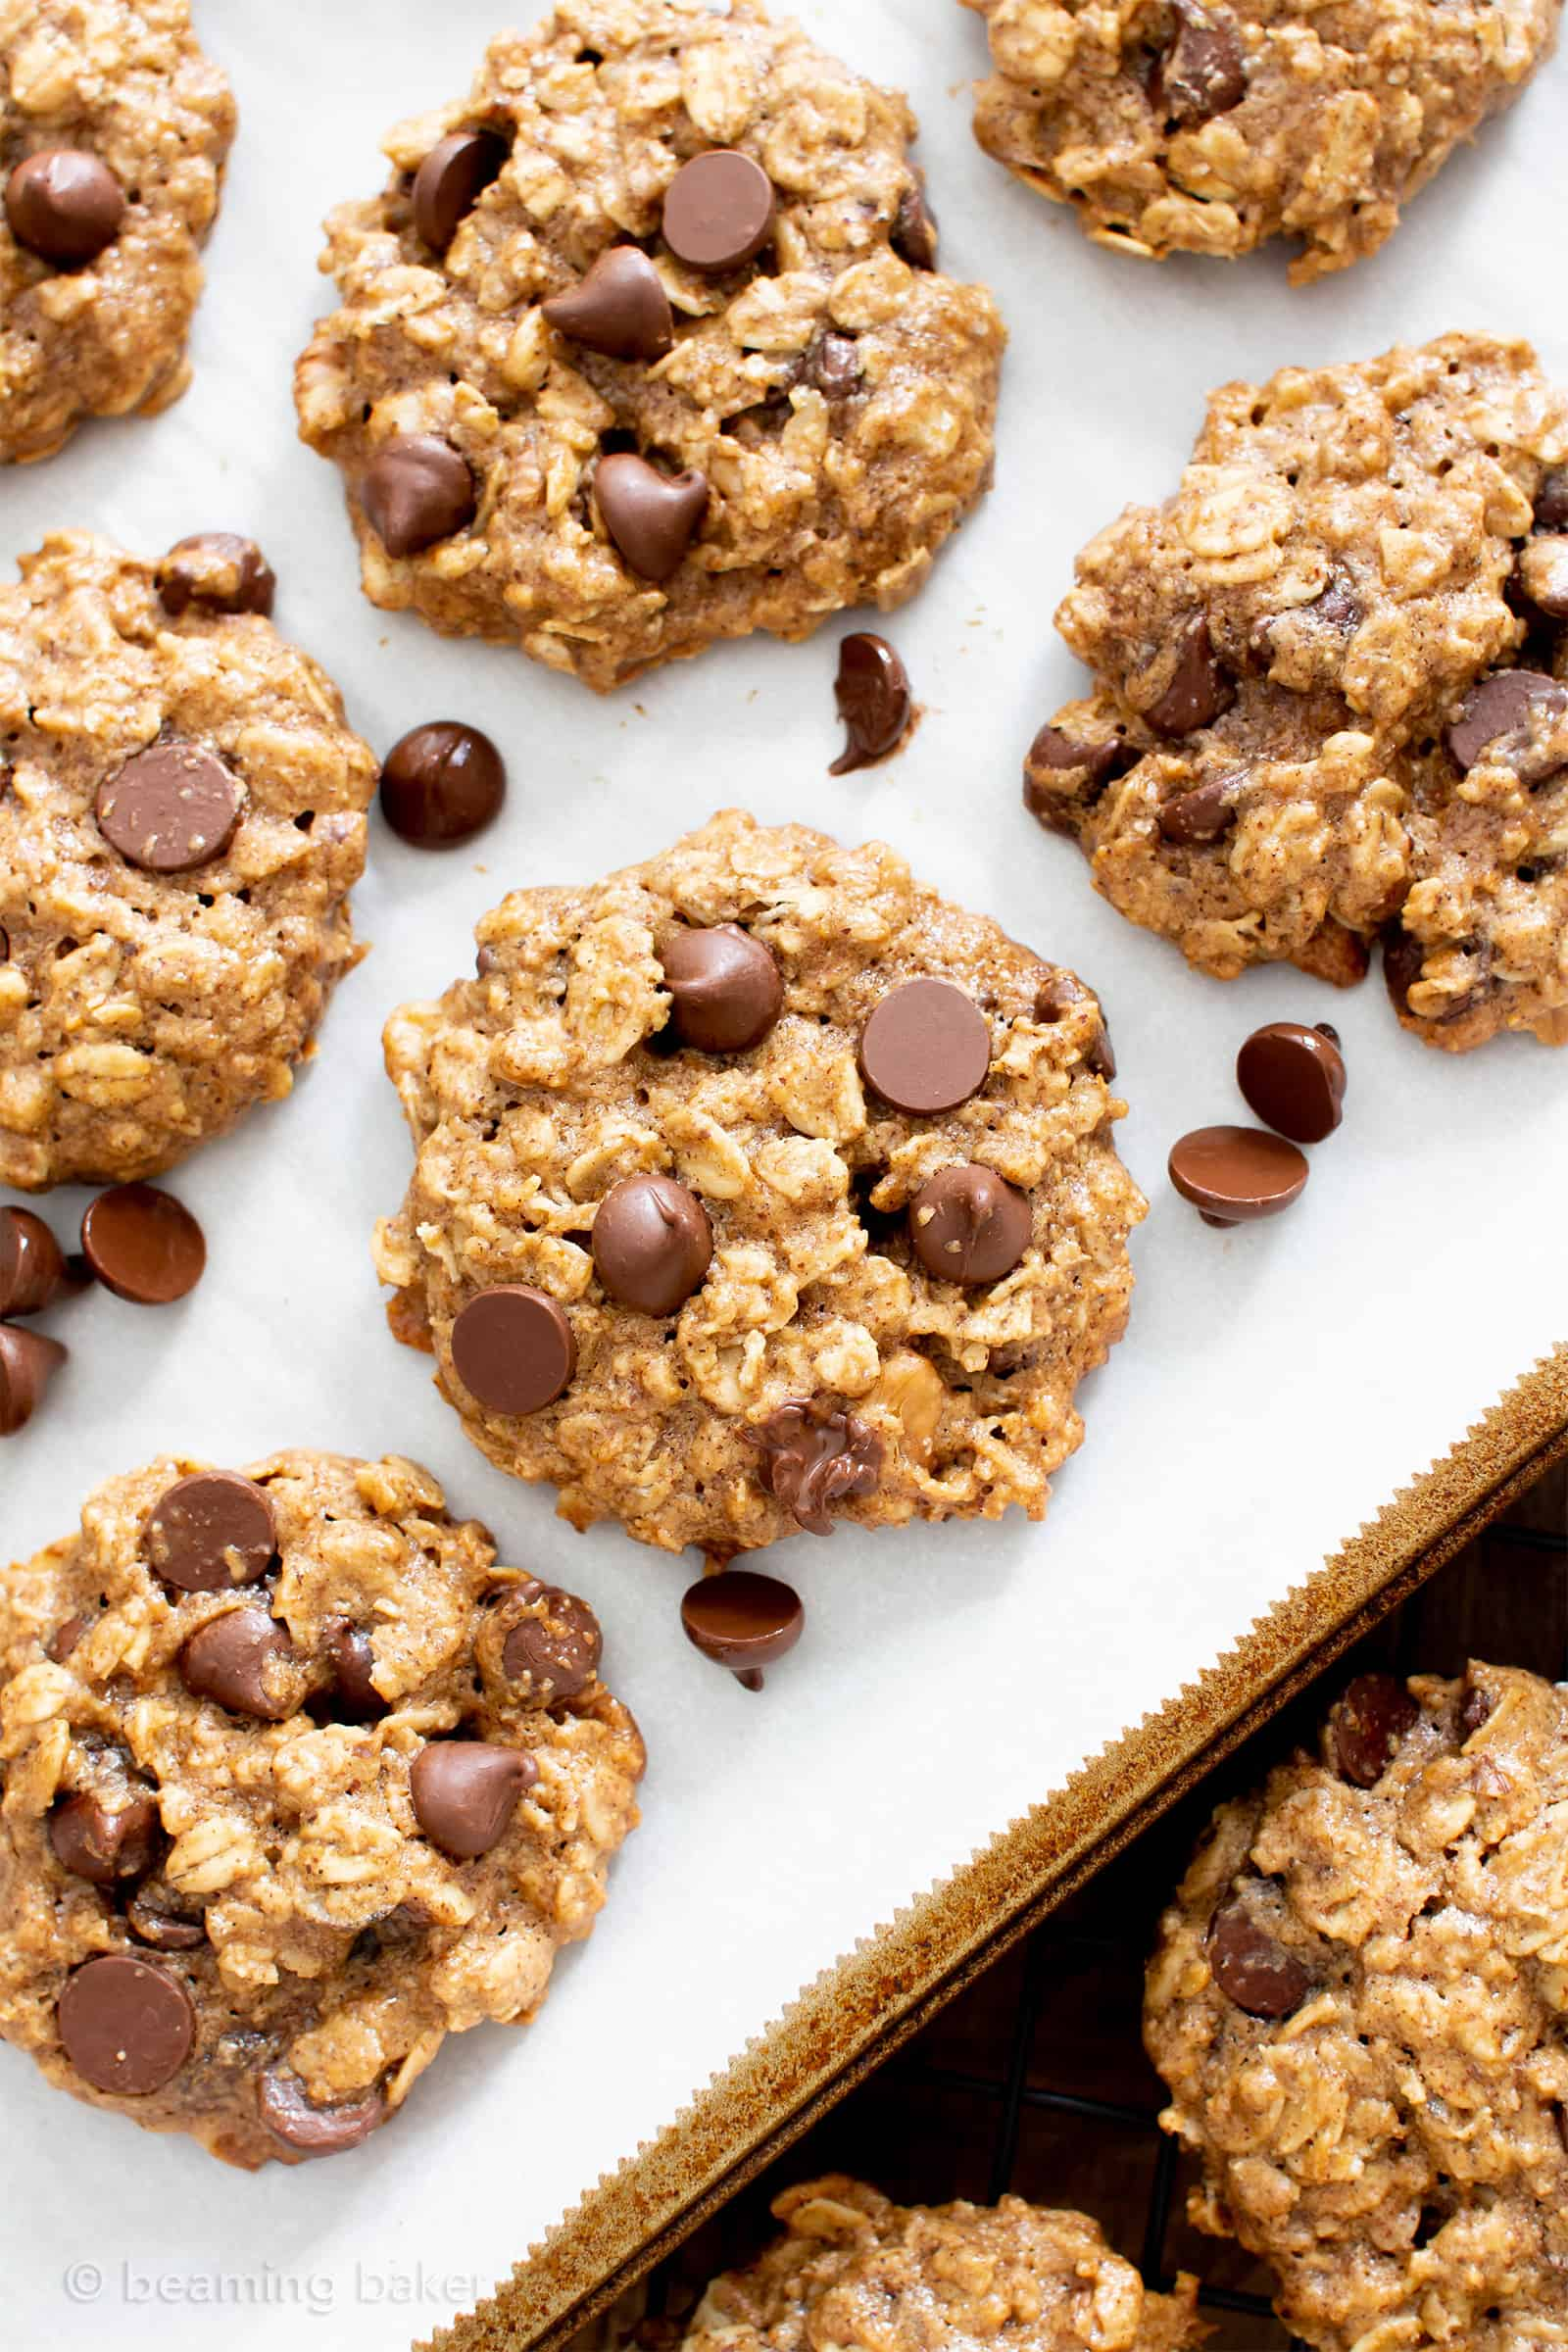 Easy Healthy Oatmeal Chocolate Chip Cookies: this easy healthy oatmeal chocolate chip cookies recipe yields chewy cookies with crispy edges and lots of chocolate chips! Vegan, Gluten-Free, Dairy-Free, Healthy. #Healthy #OatmealCookies #HealthyCookies #ChocolateChip | Recipe at BeamingBaker.com